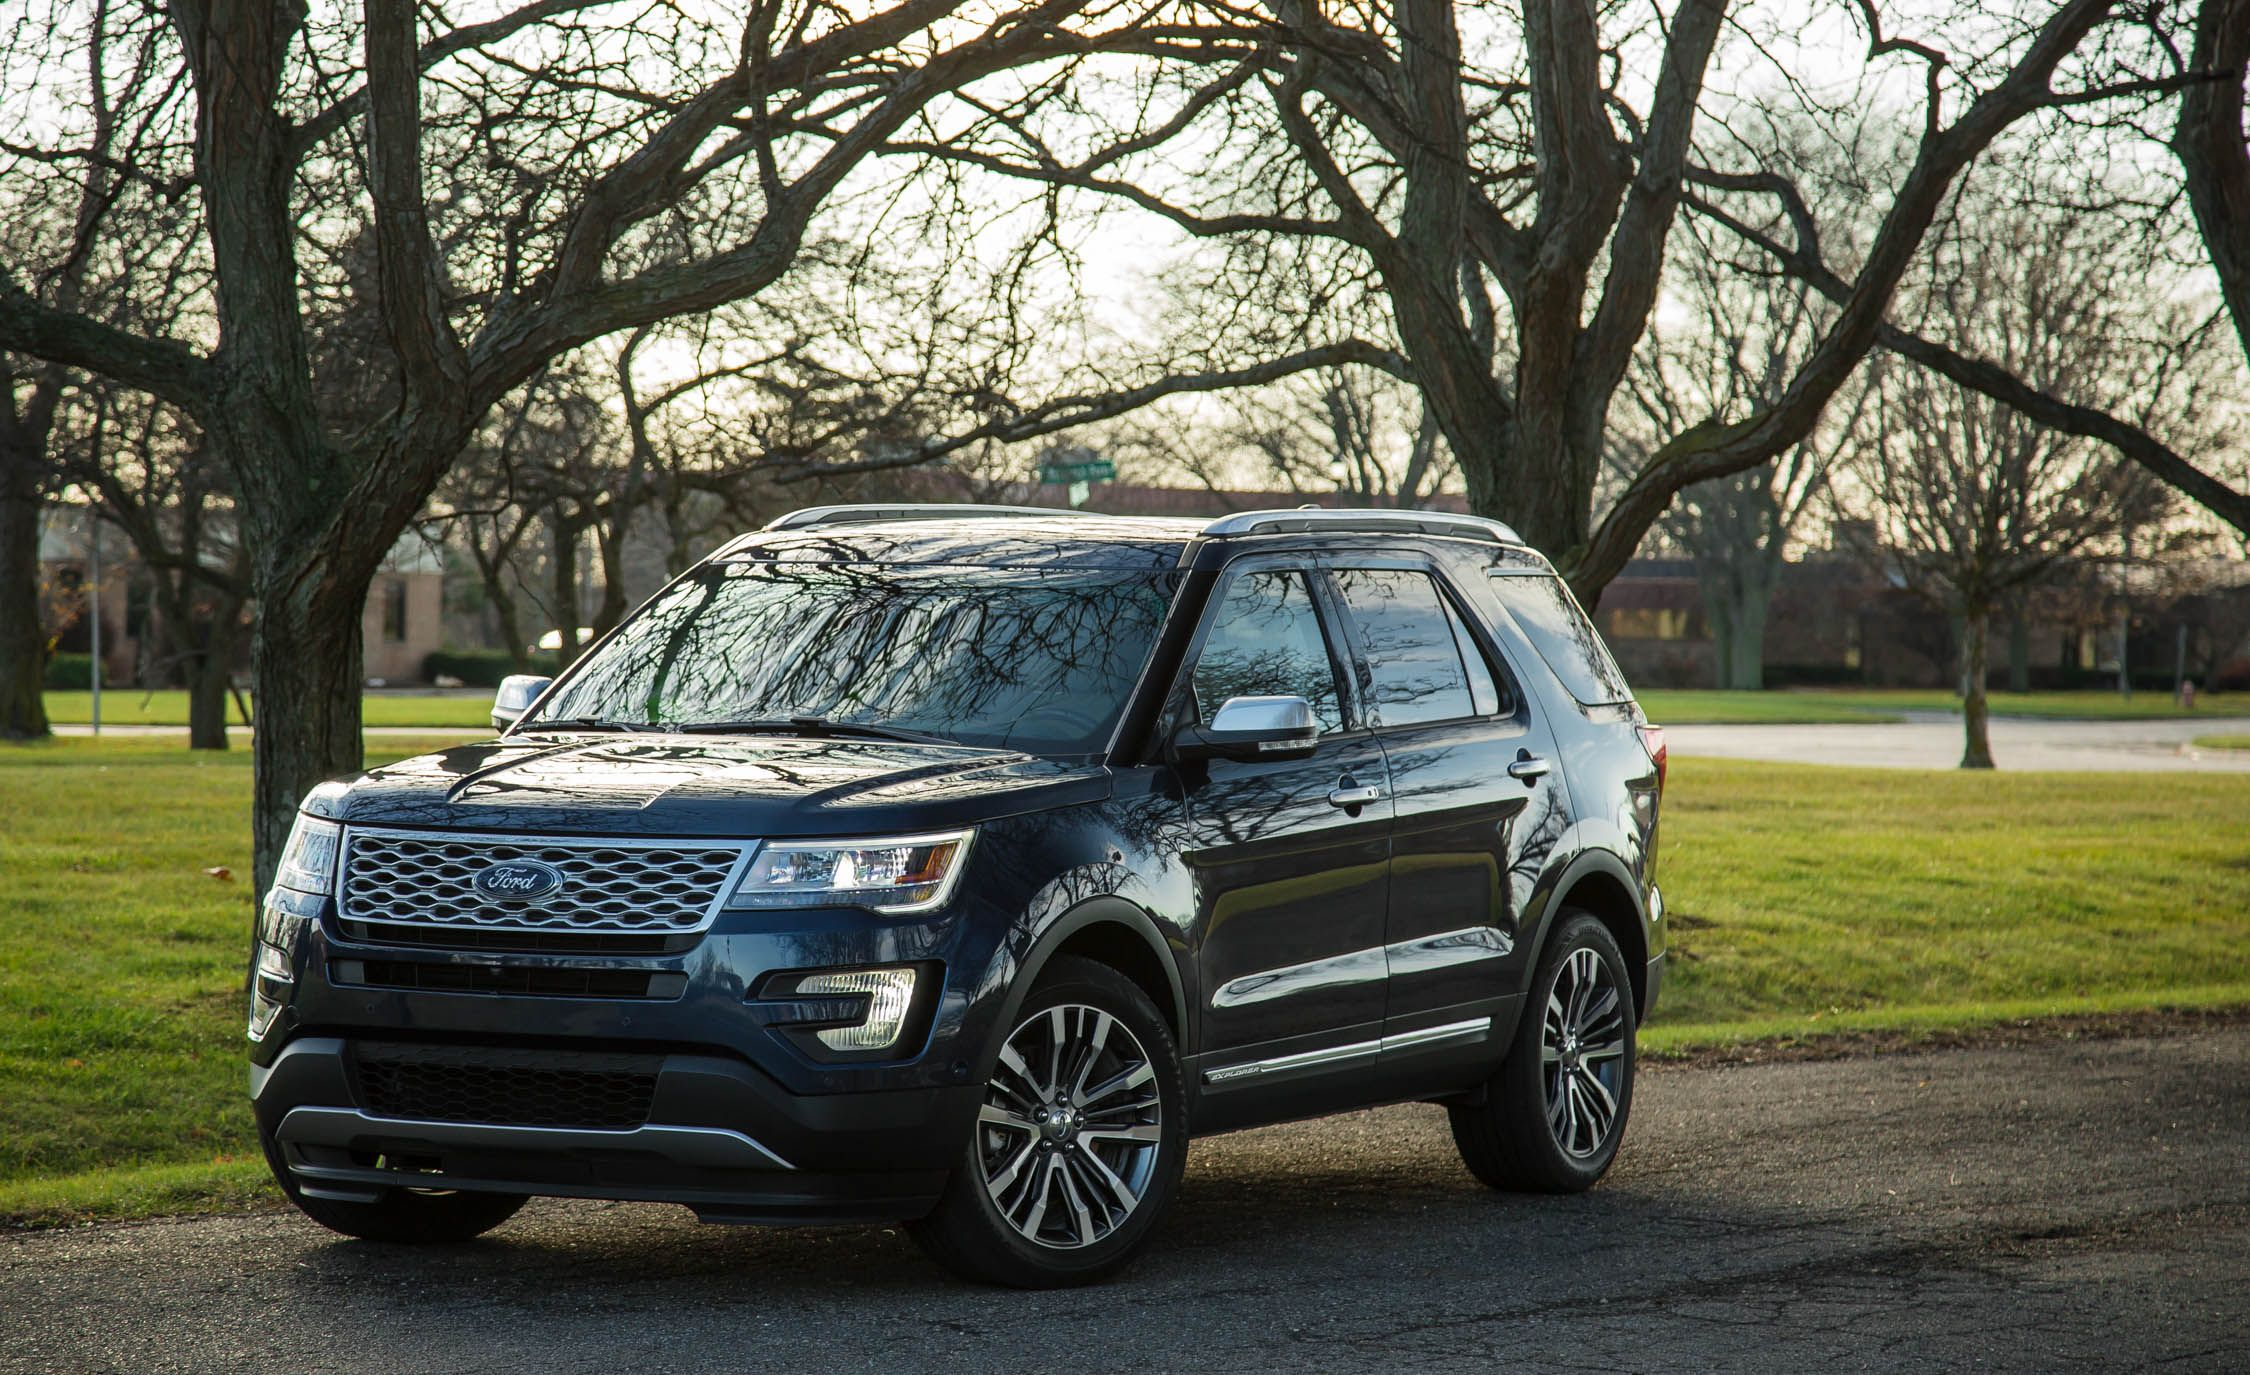 2018 Ford Explorer Cargo Space and Storage Review